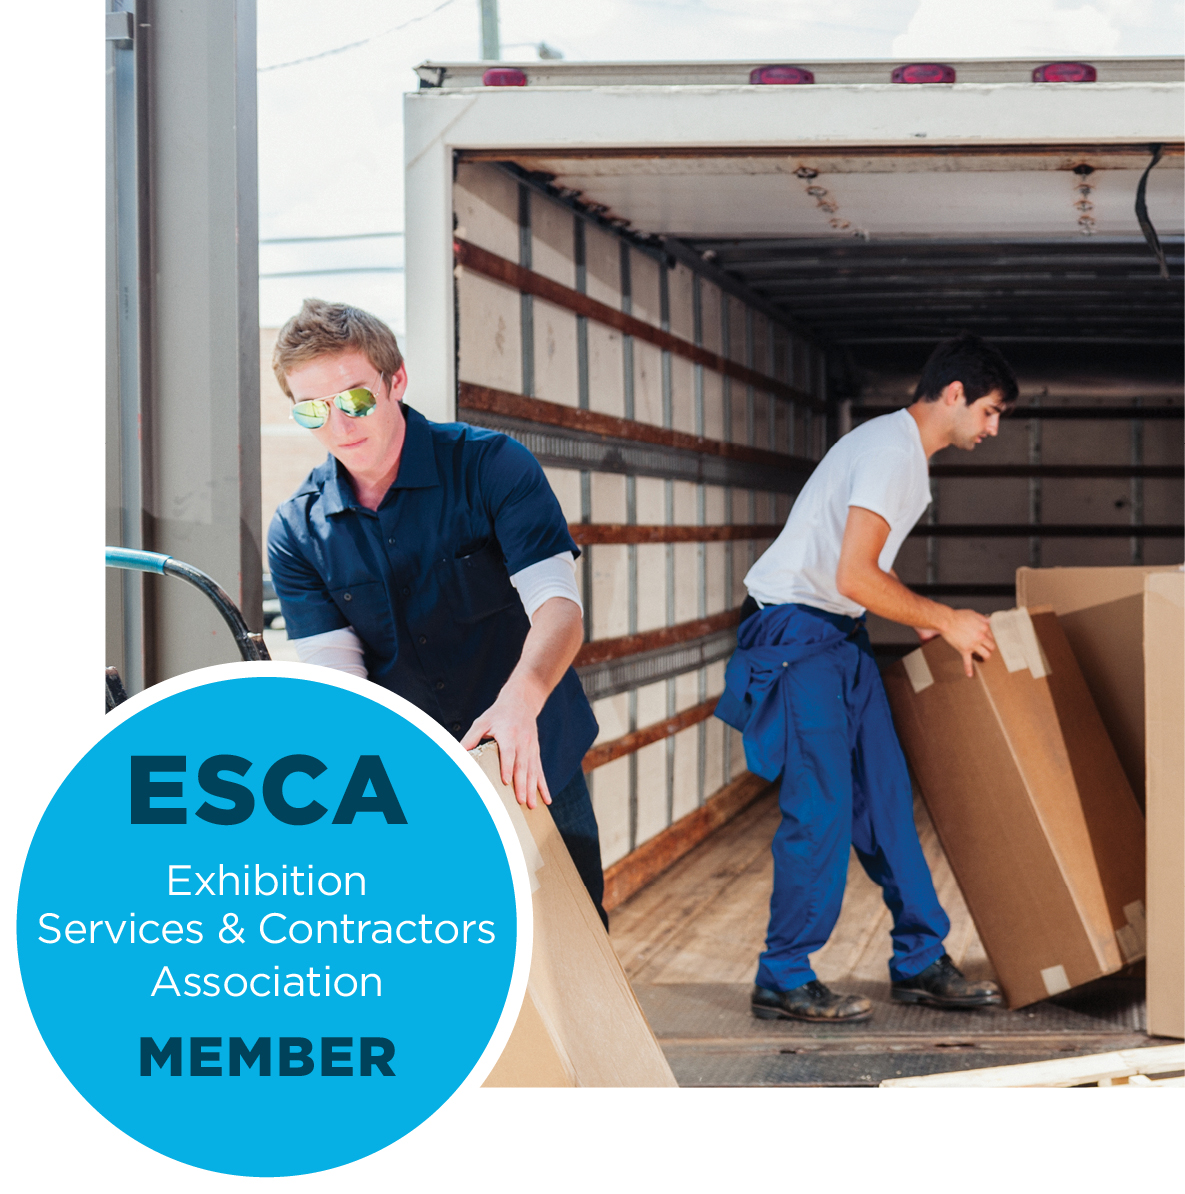 ESCA: Exhibition Services & Contractors Association Member